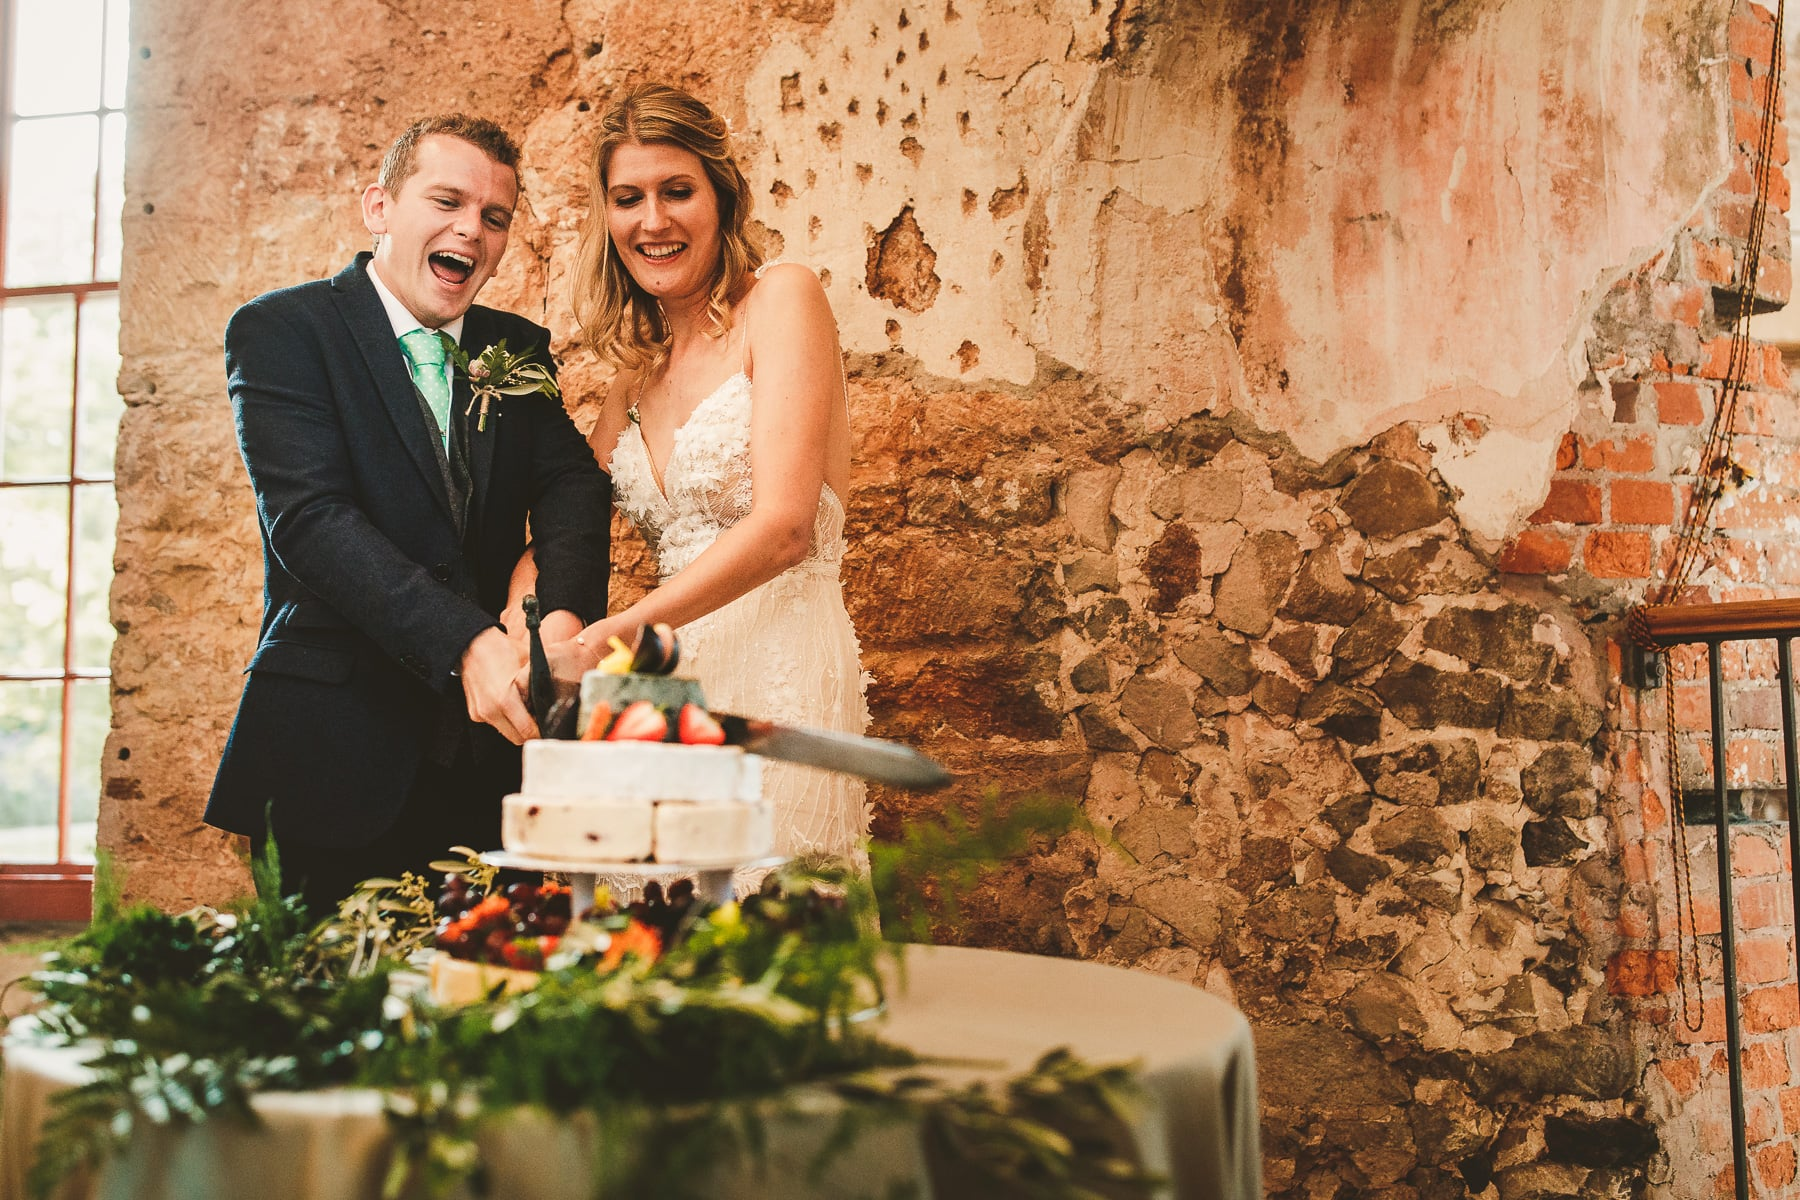 Wedding-cake-cutting-Lulworth-Castle-Dorset